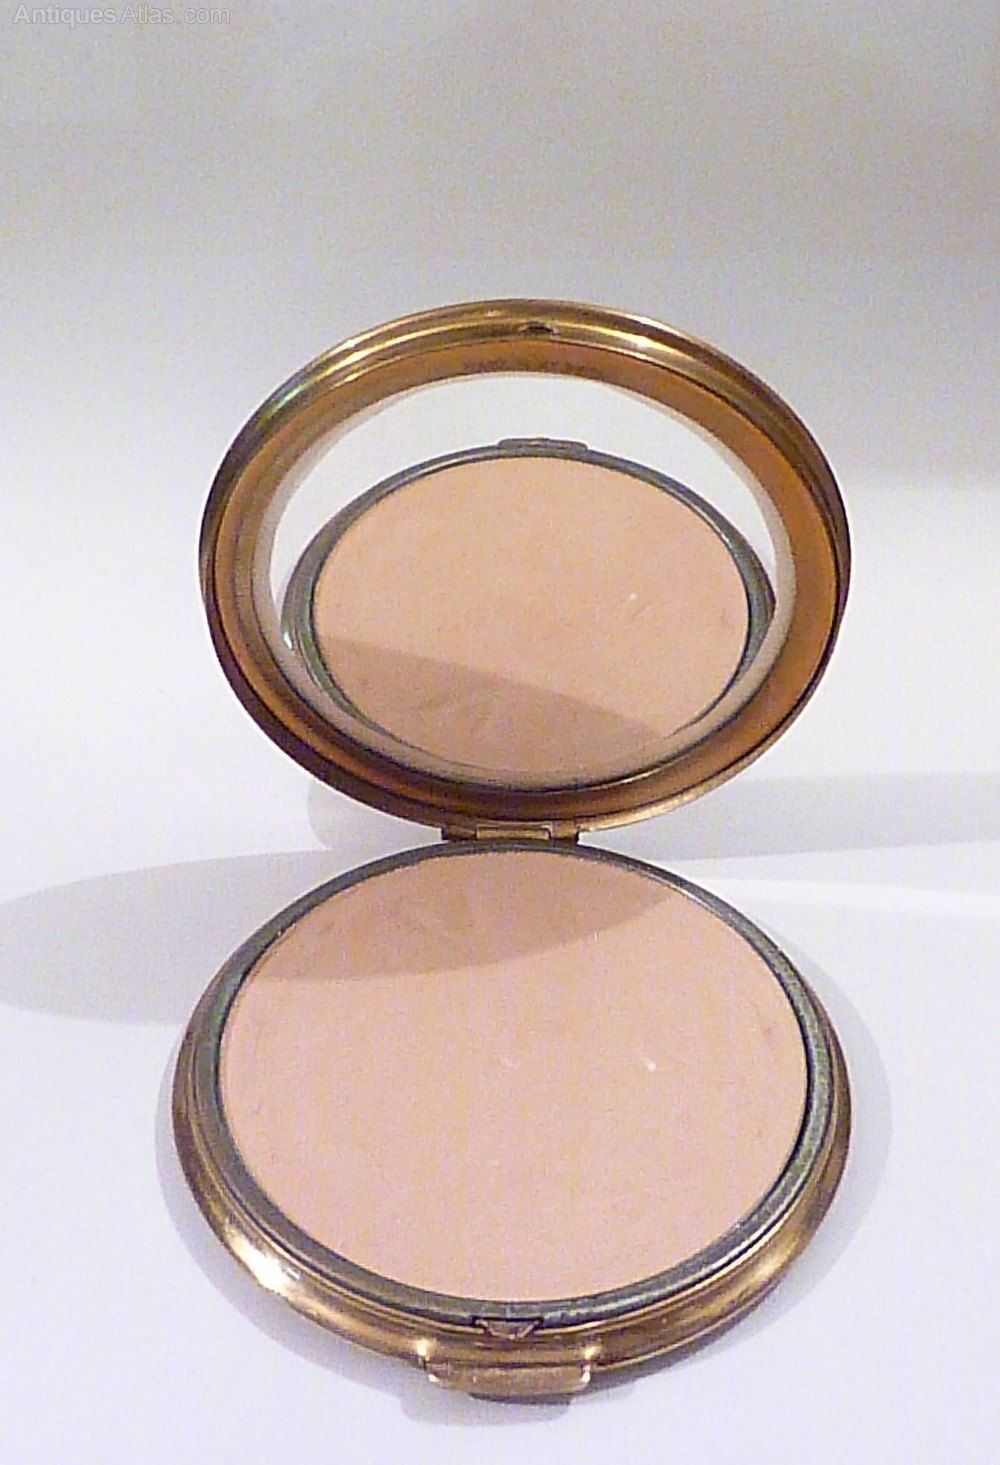 Antiques Atlas 1950s Mascot Hand Painted Powder Compact